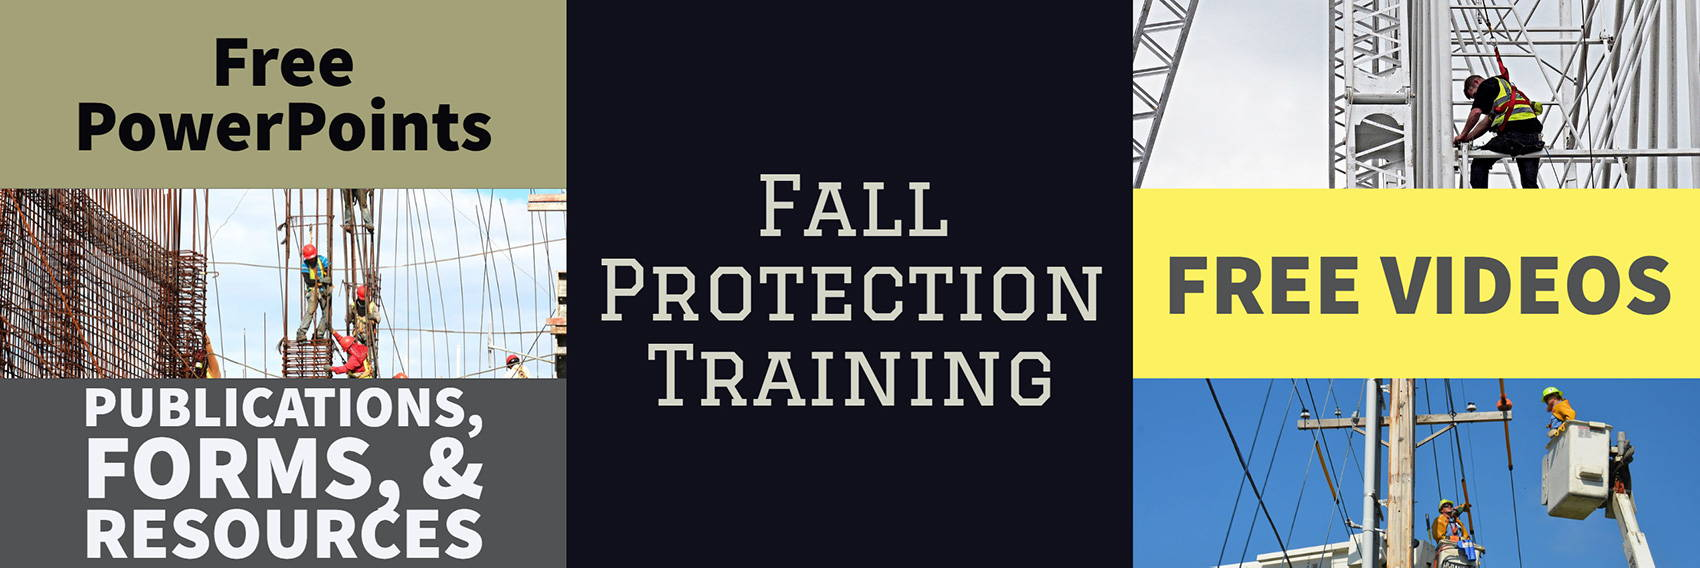 Fall Protection Training Page Banner